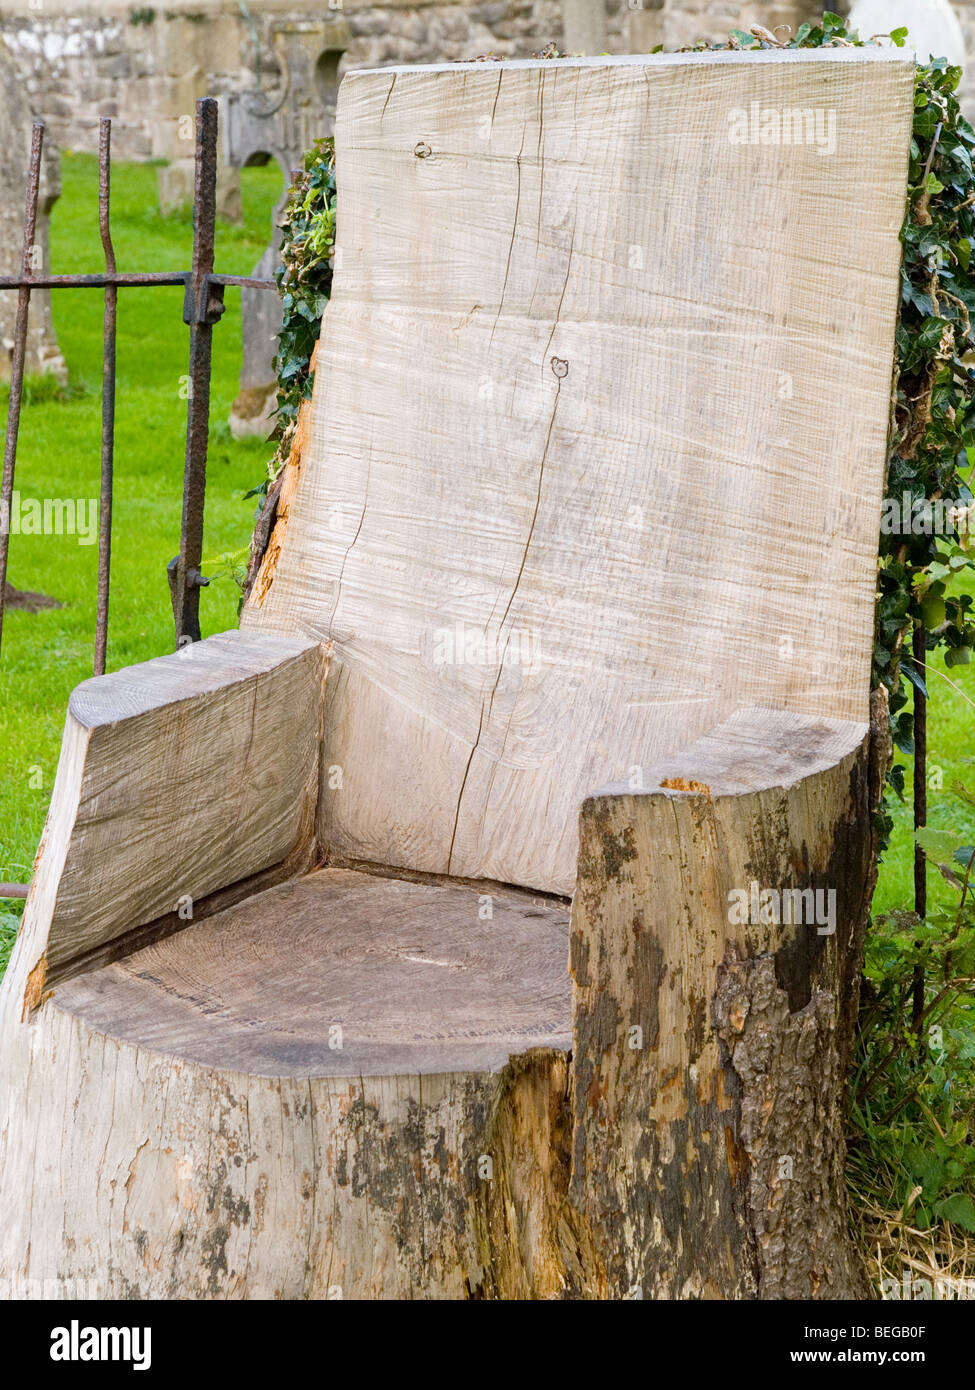 Tree Stump Seats A Seat Carved Out Of A Tree Trunk Derbyshire England Uk Stock